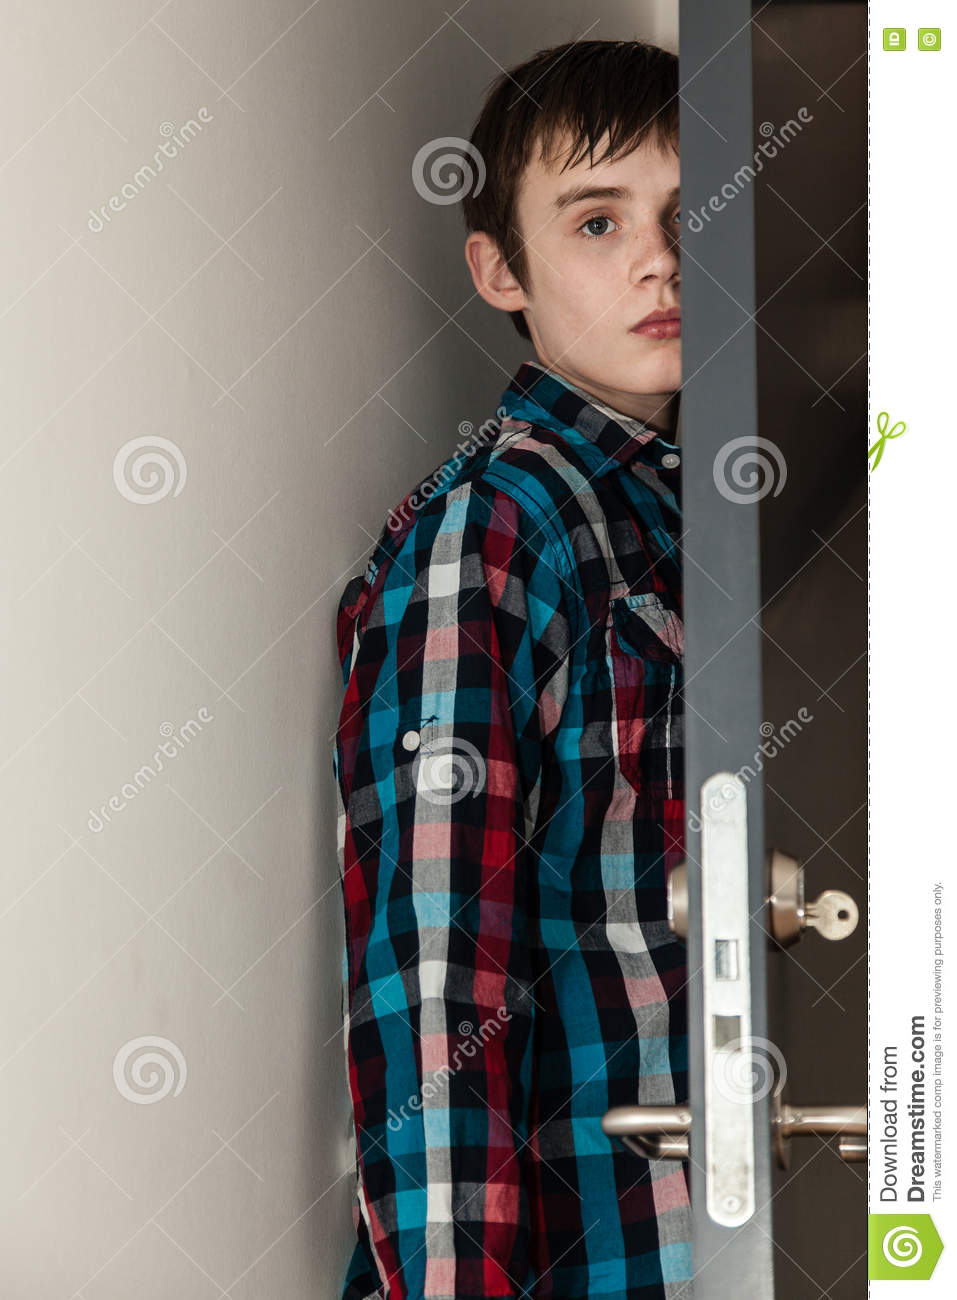 Teenage Boy Hiding Behind Open Door In Home Stock Photo